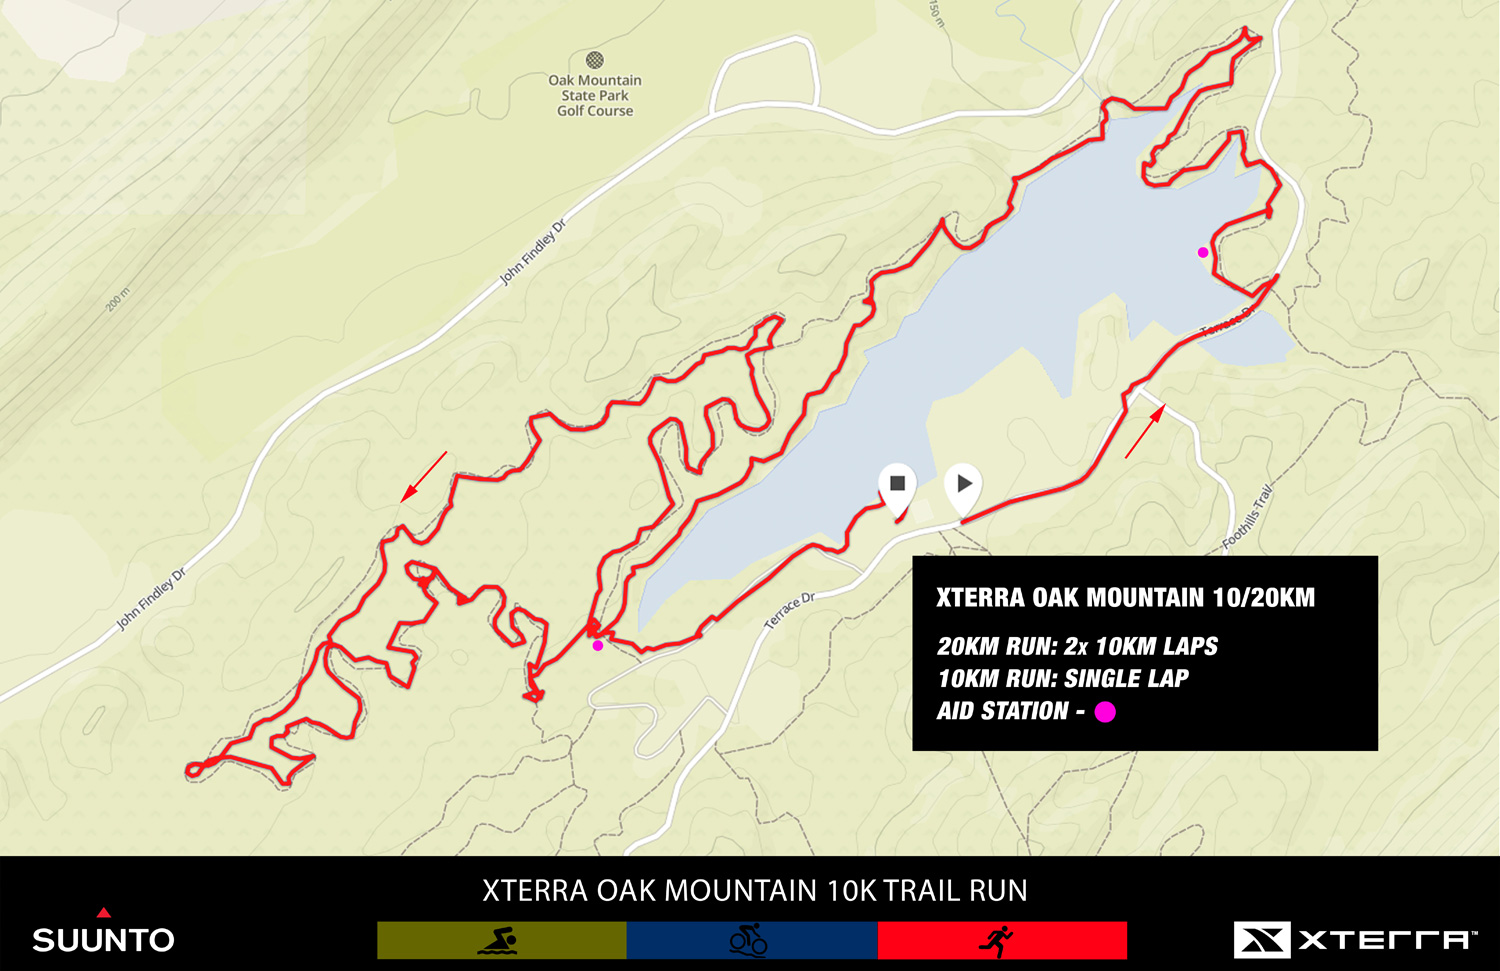 XTERRA Oak Mountain Trail Run